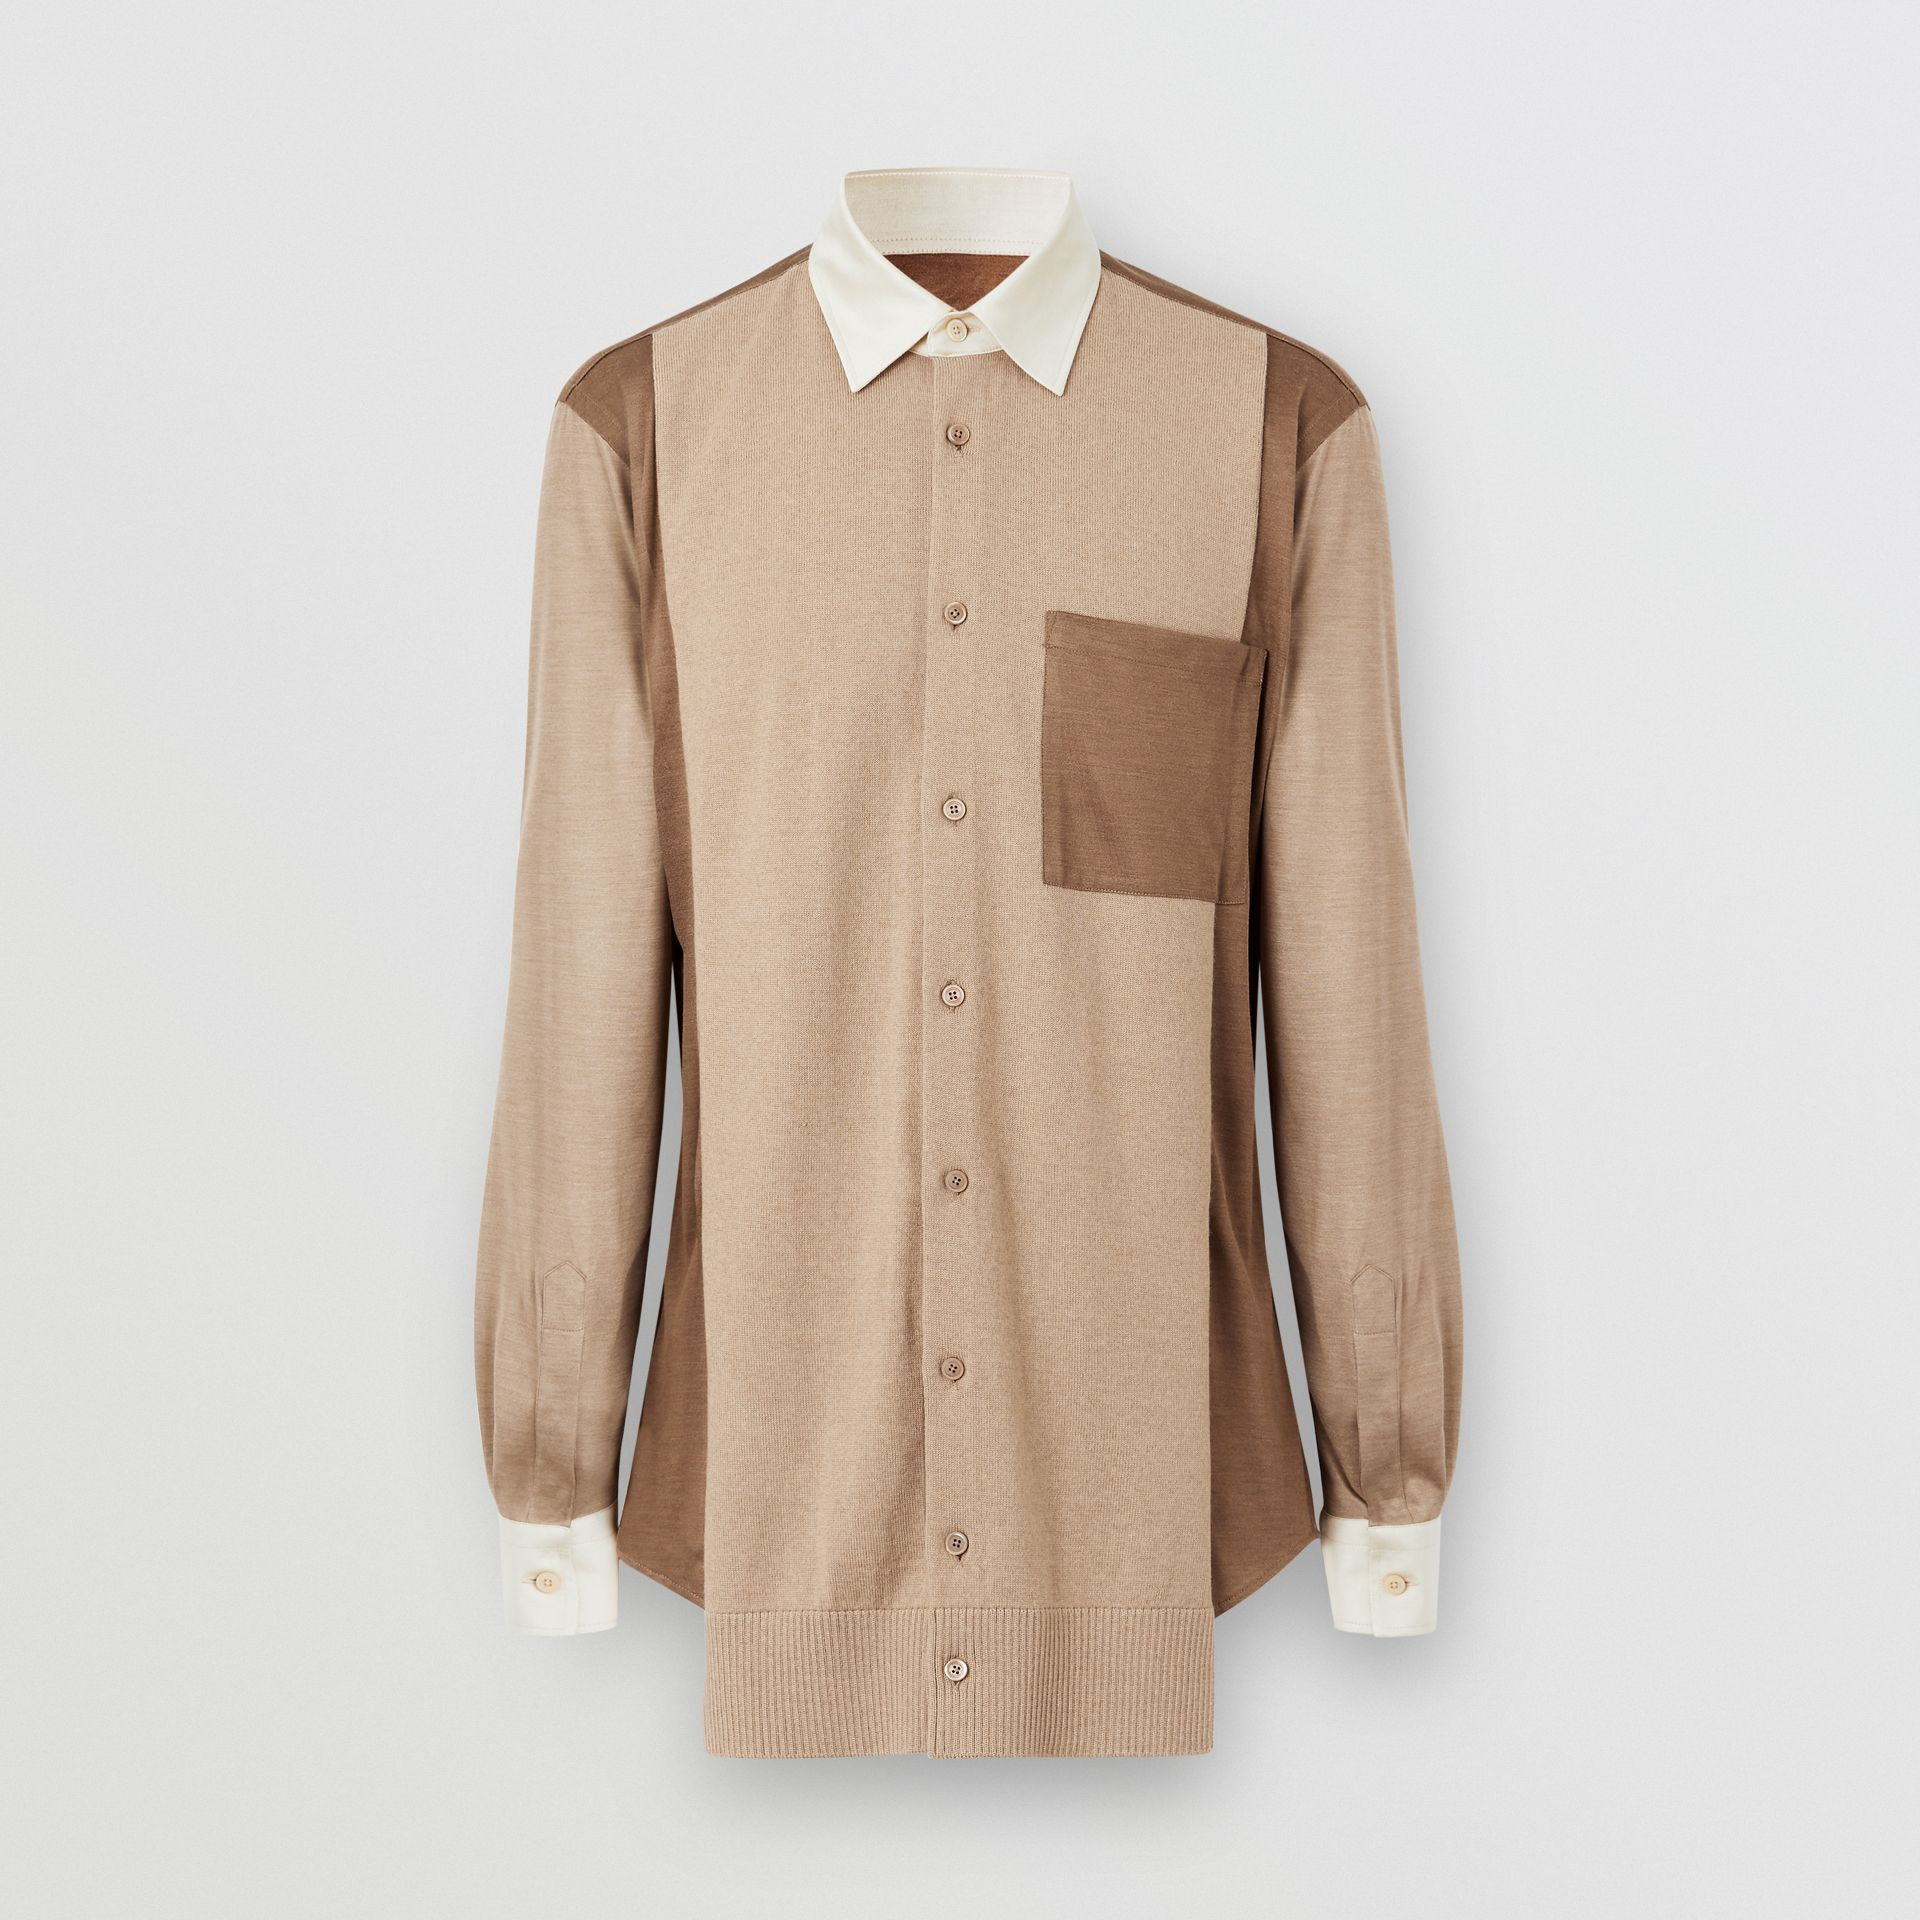 Classic Fit Panelled Silk and Merino Wool Shirt in Warm Camel - Men | Burberry Hong Kong S.A.R - gallery image 3